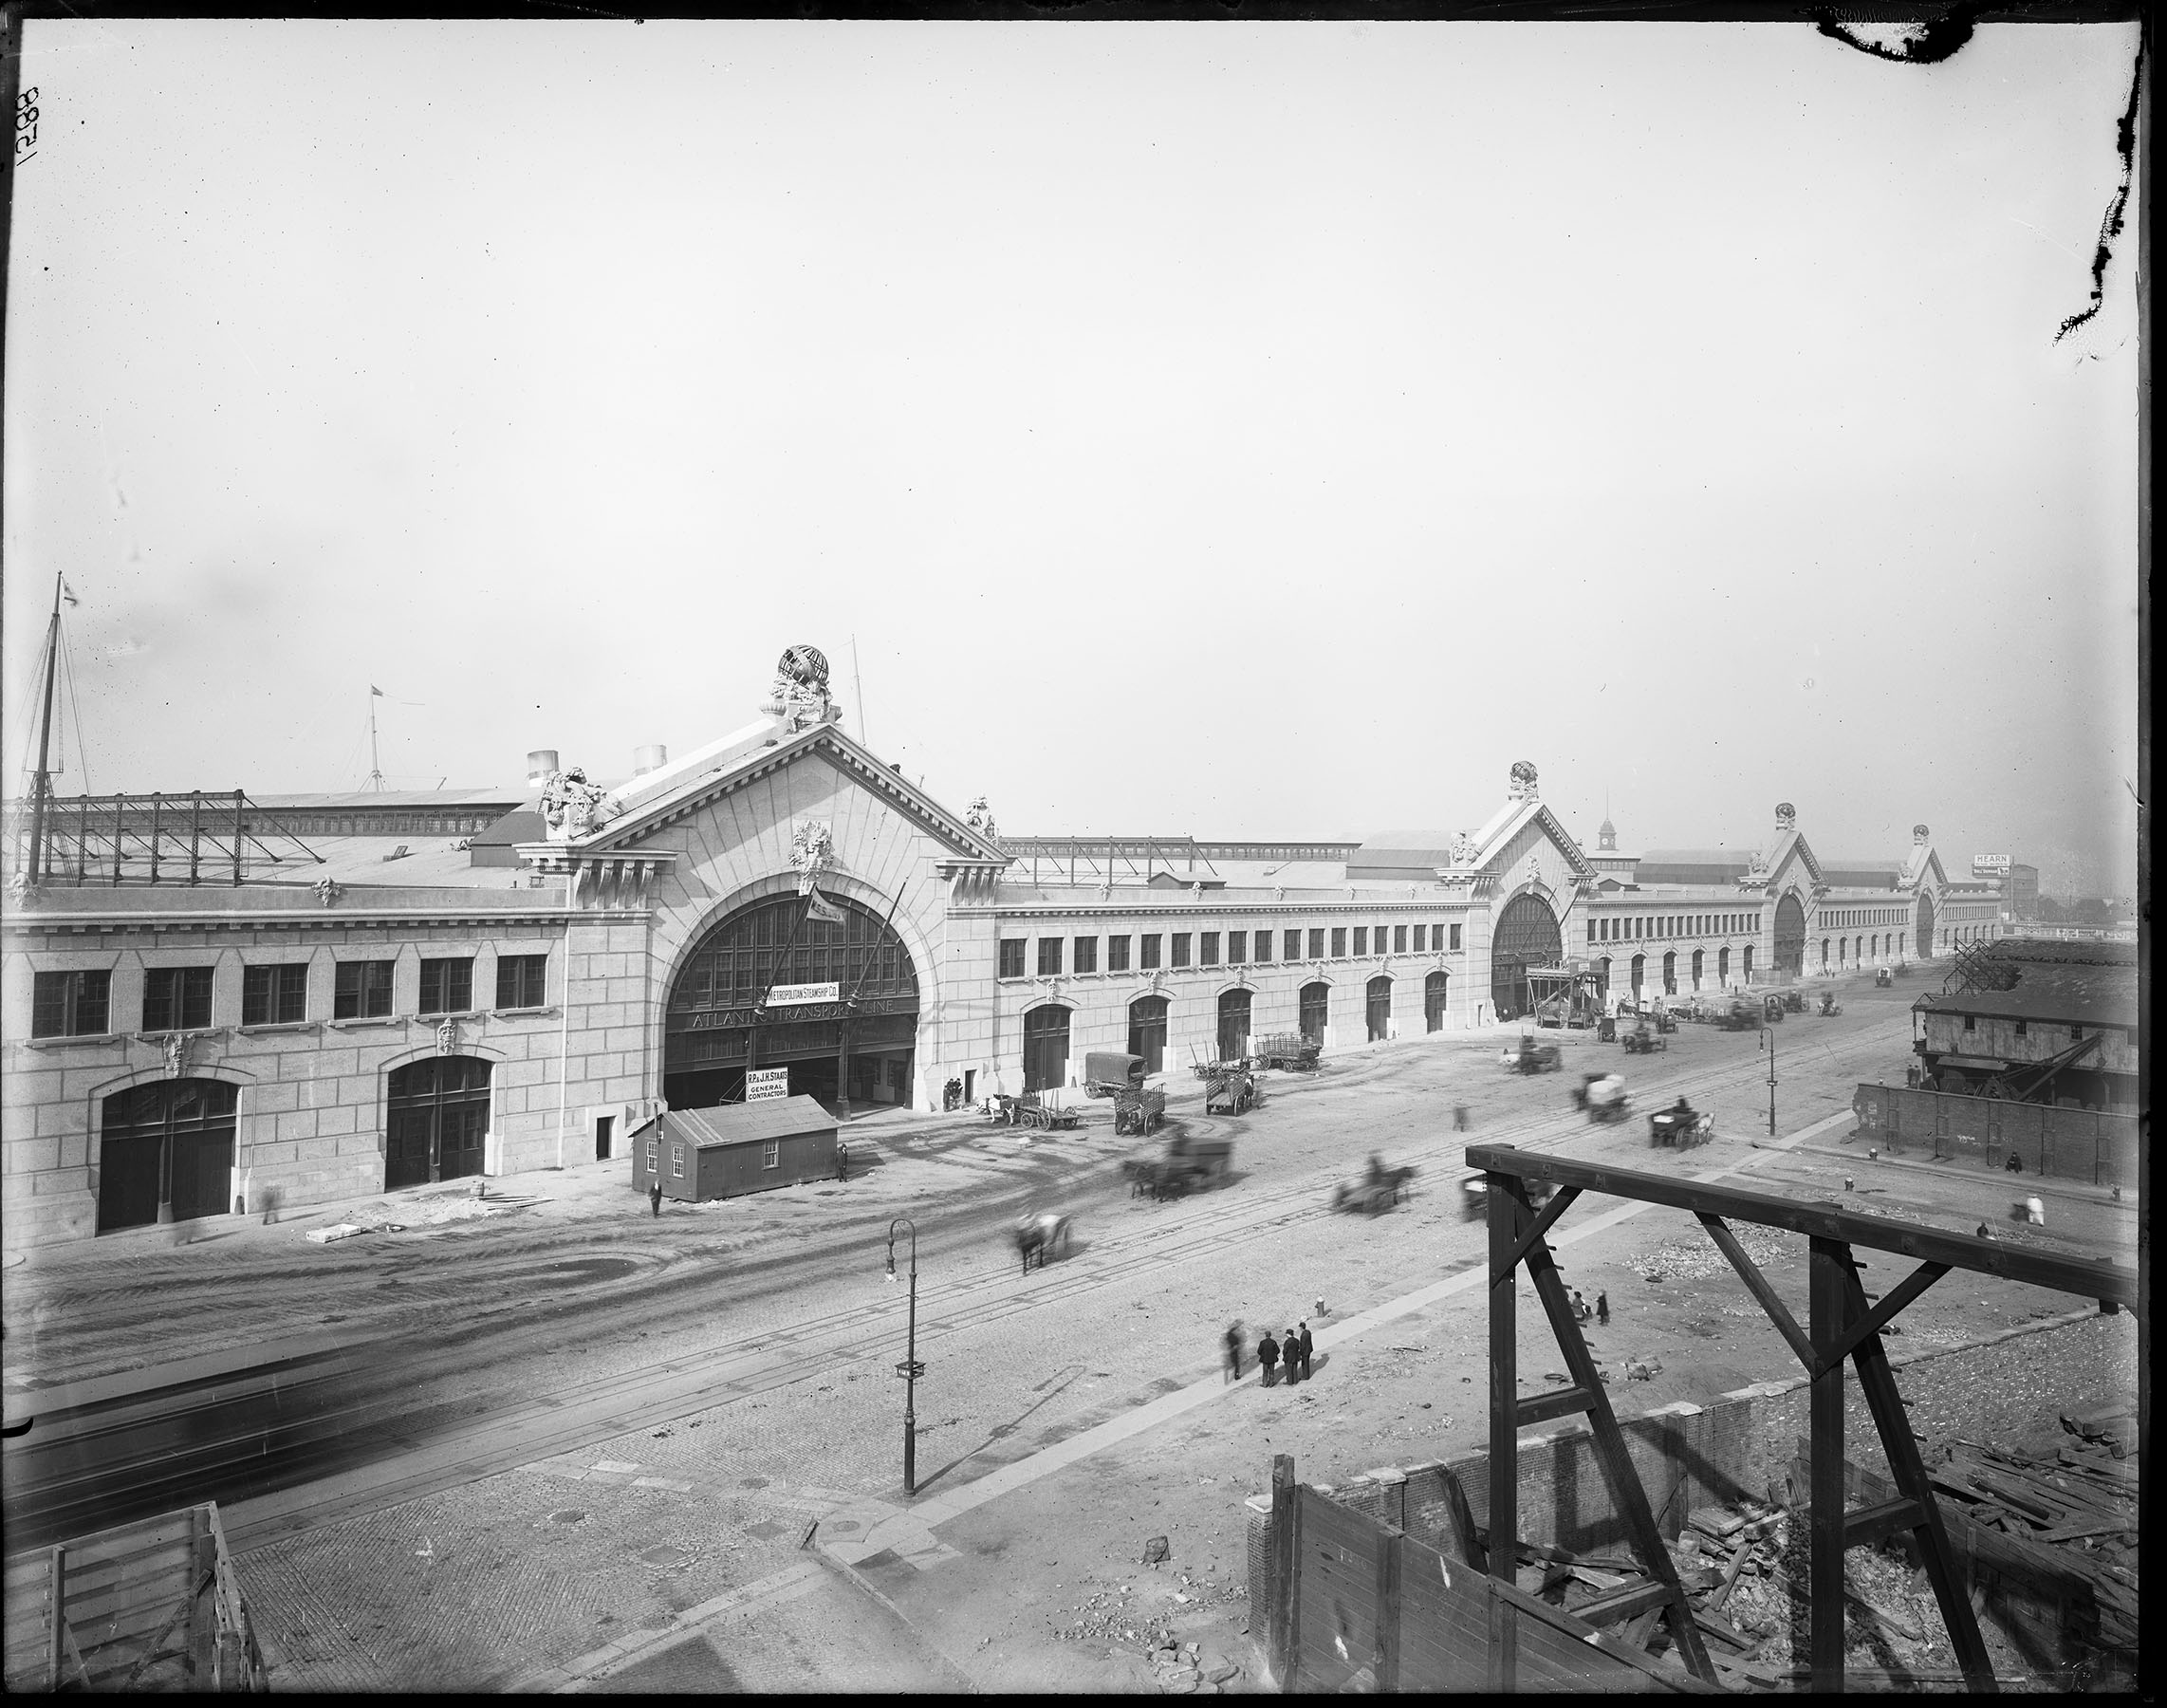 Construction of the Chelsea Piers is well-documented in the Archives' Department of Docks & Ferries glass-plate negative collection. View along 12th Avenue, ca. 1908.